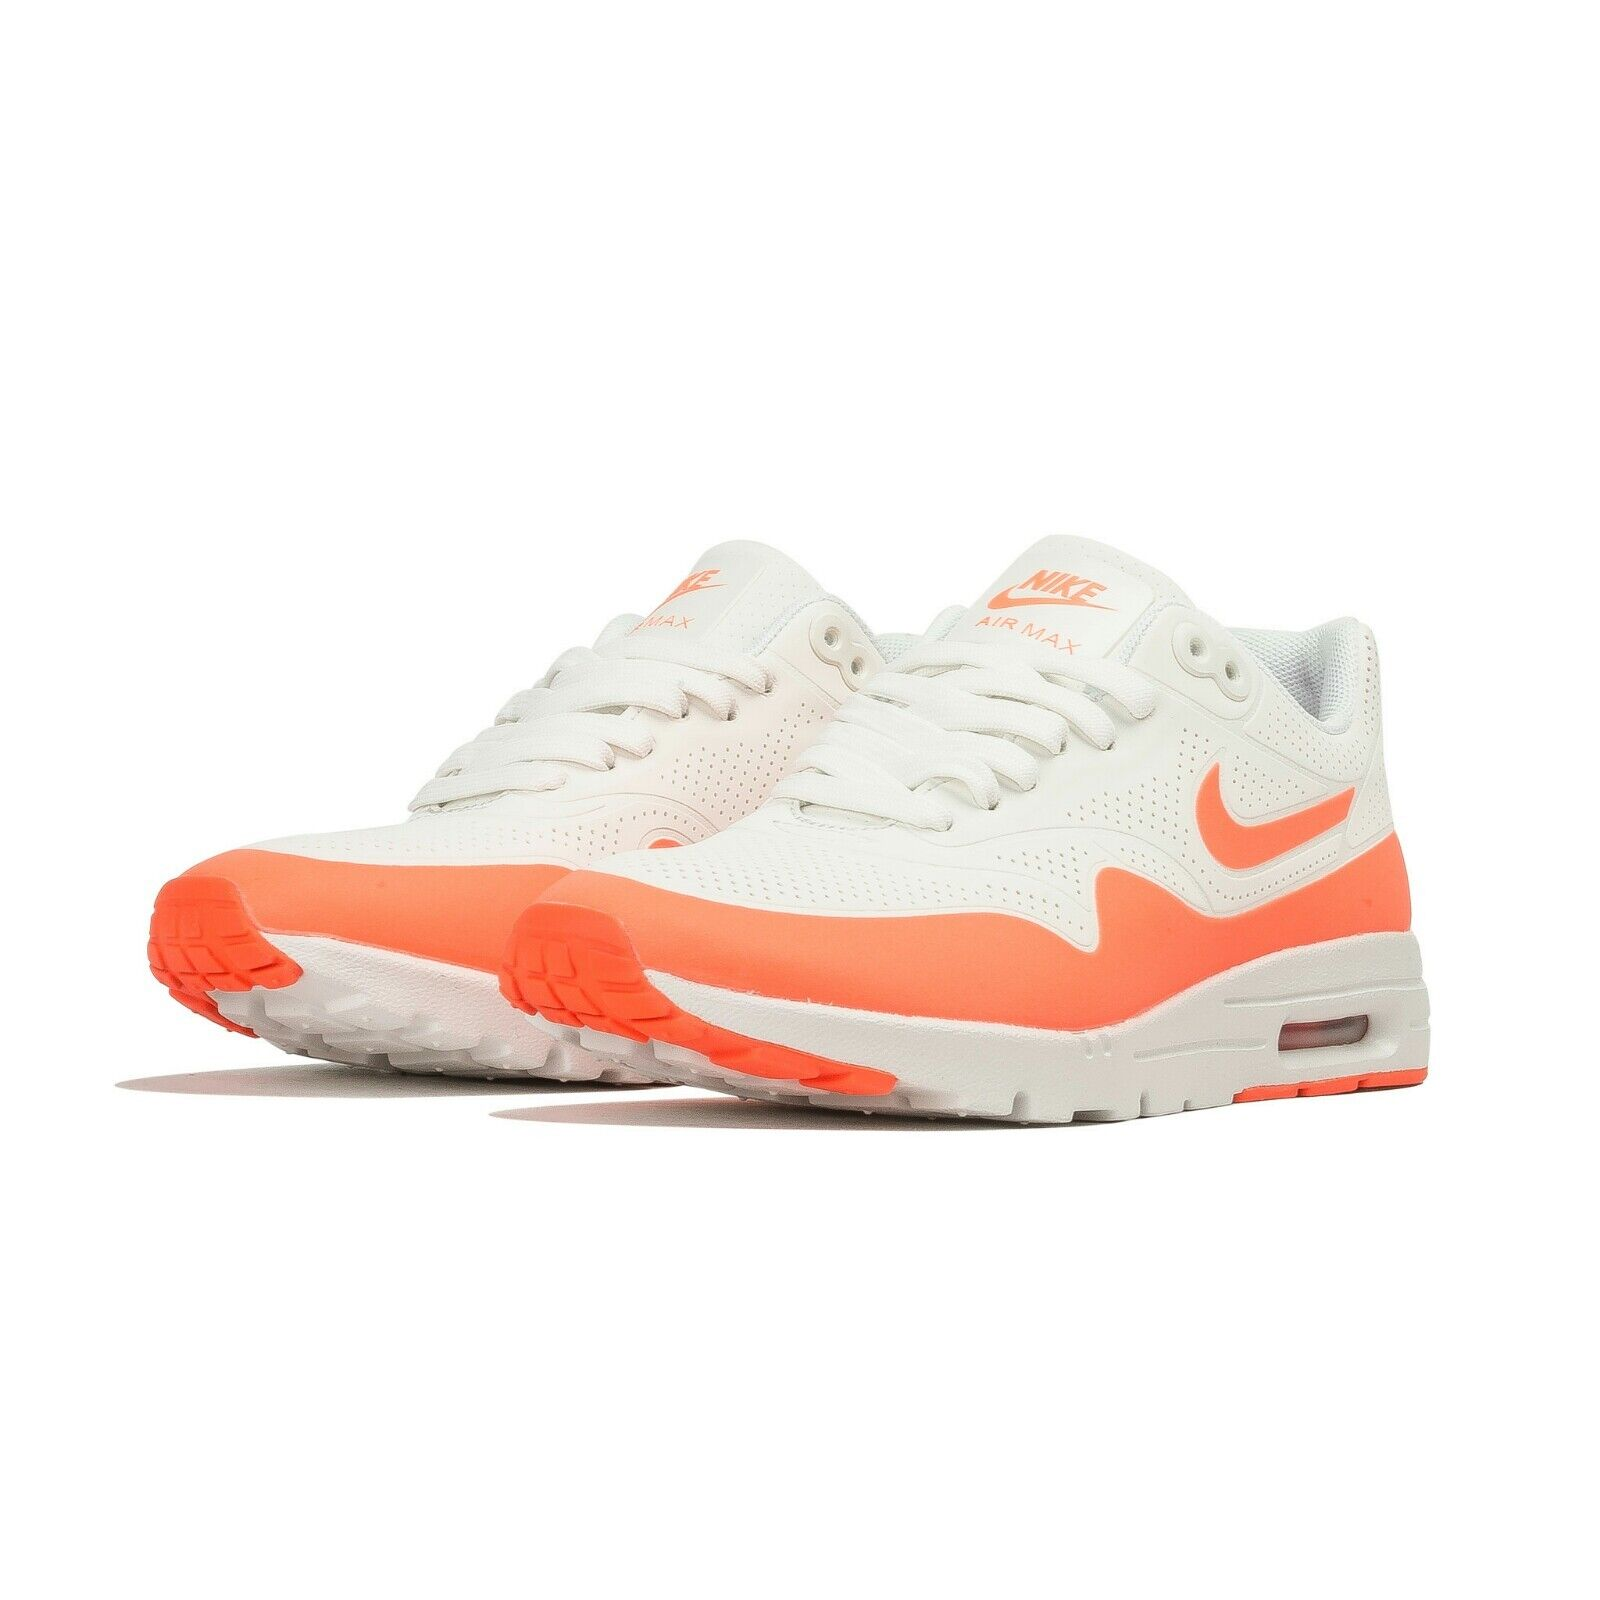 Nike air max 1 ultra moire Femme trainers 704995 103 chaussures 5.5 EUR 39